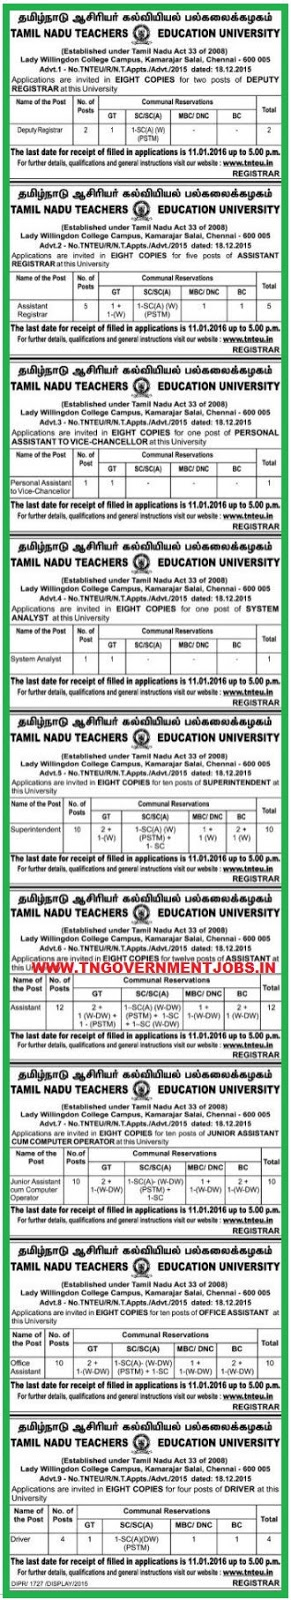 Applications are invited for Various Non Teaching Posts in Tamil Nadu Teachers Education University (TNTEU) Chennai